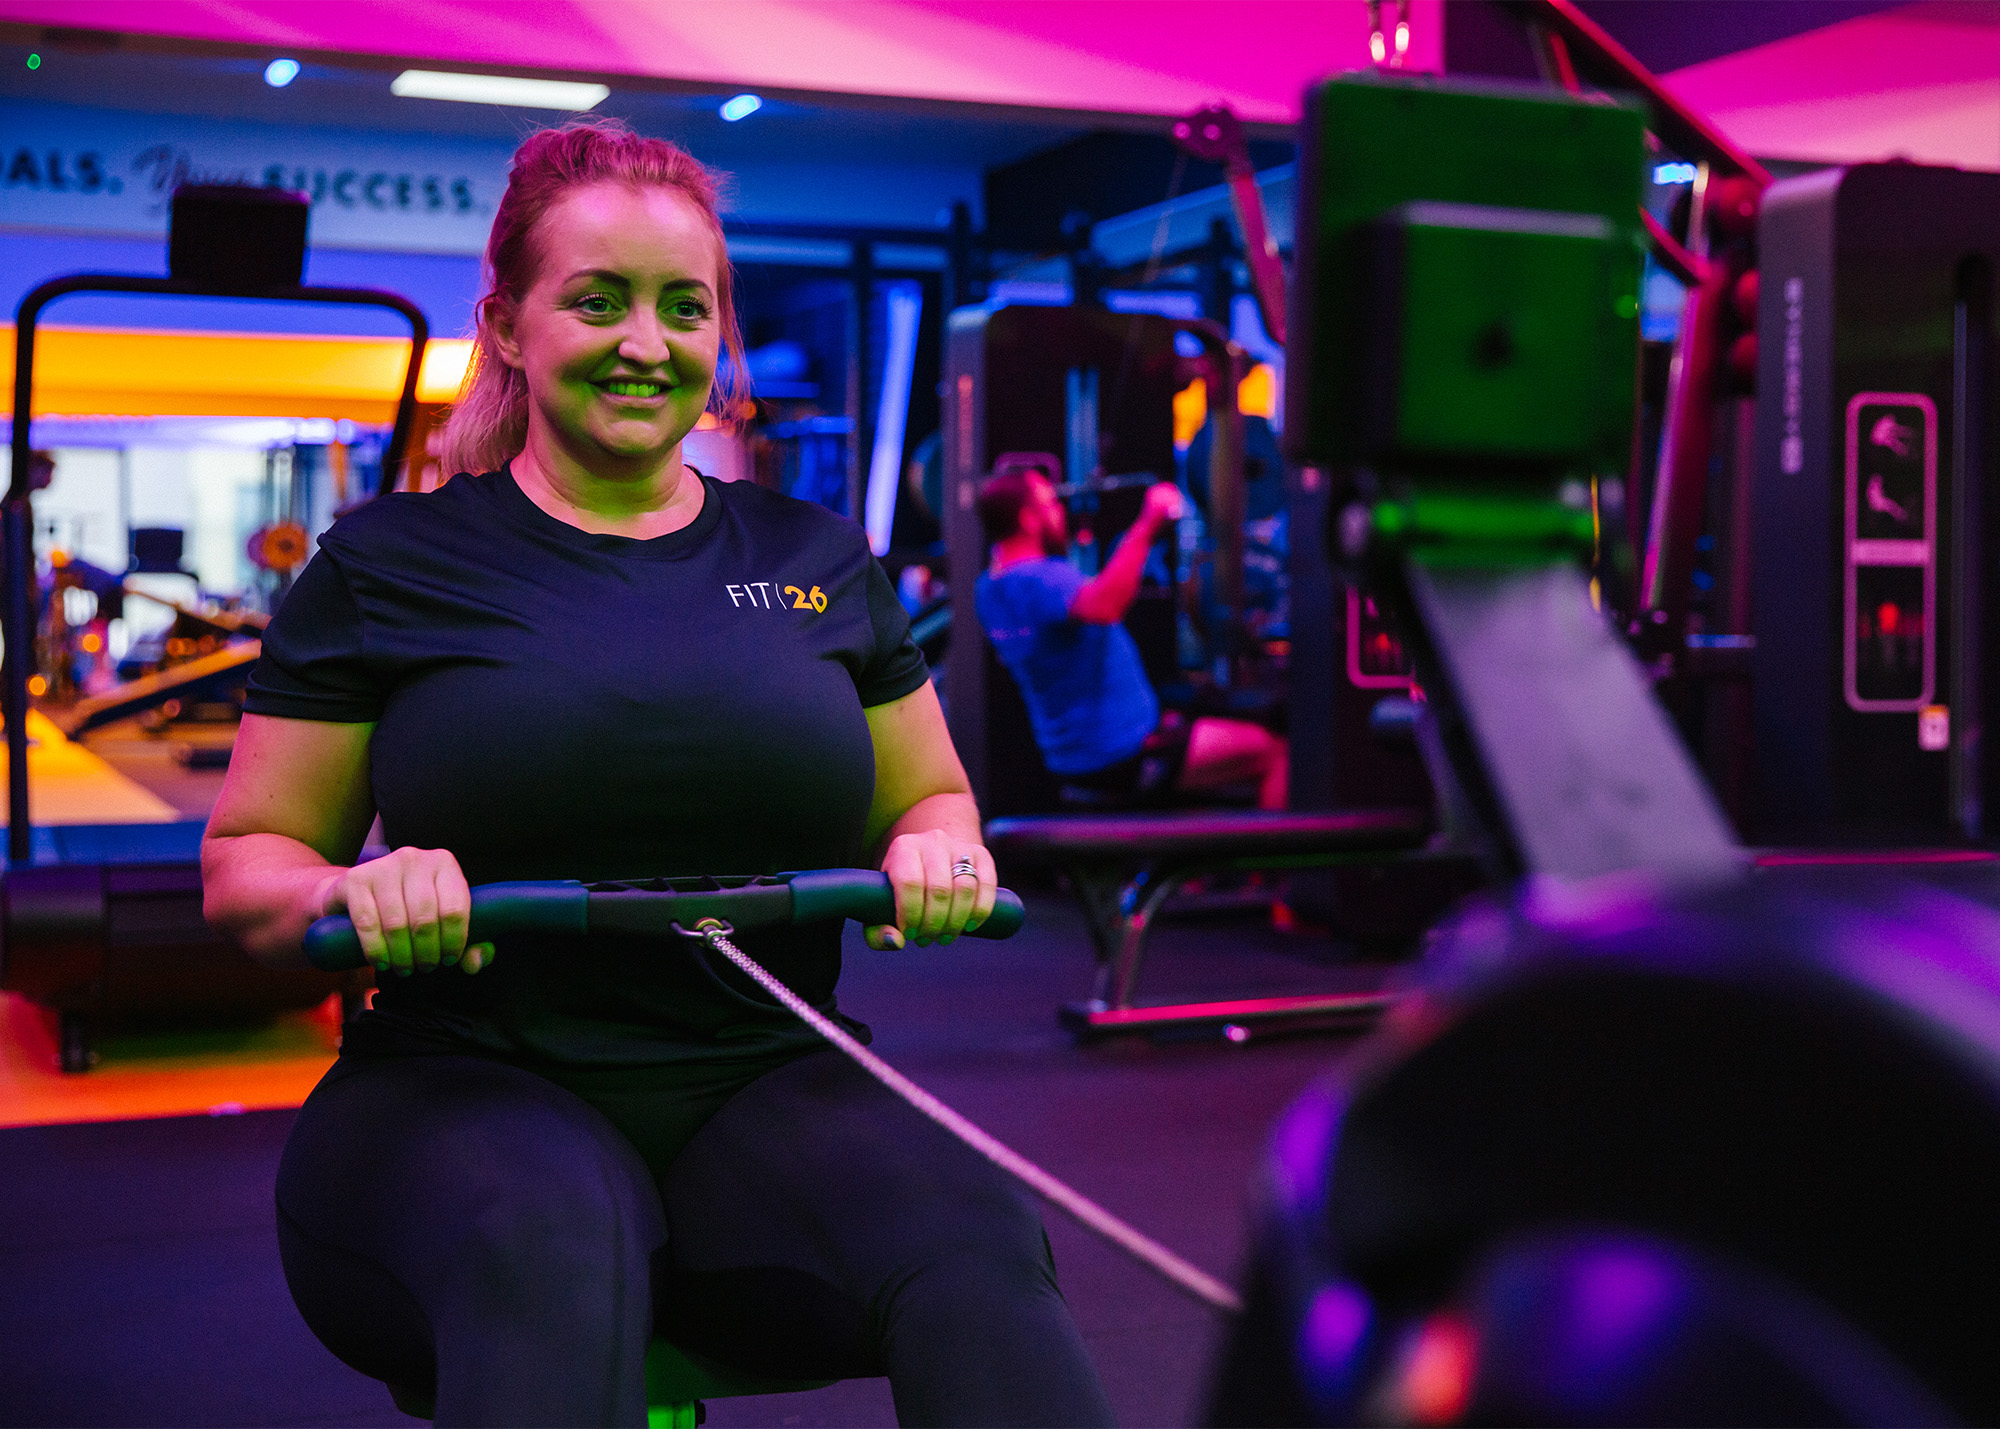 Fit26 Personal Trainer Rower